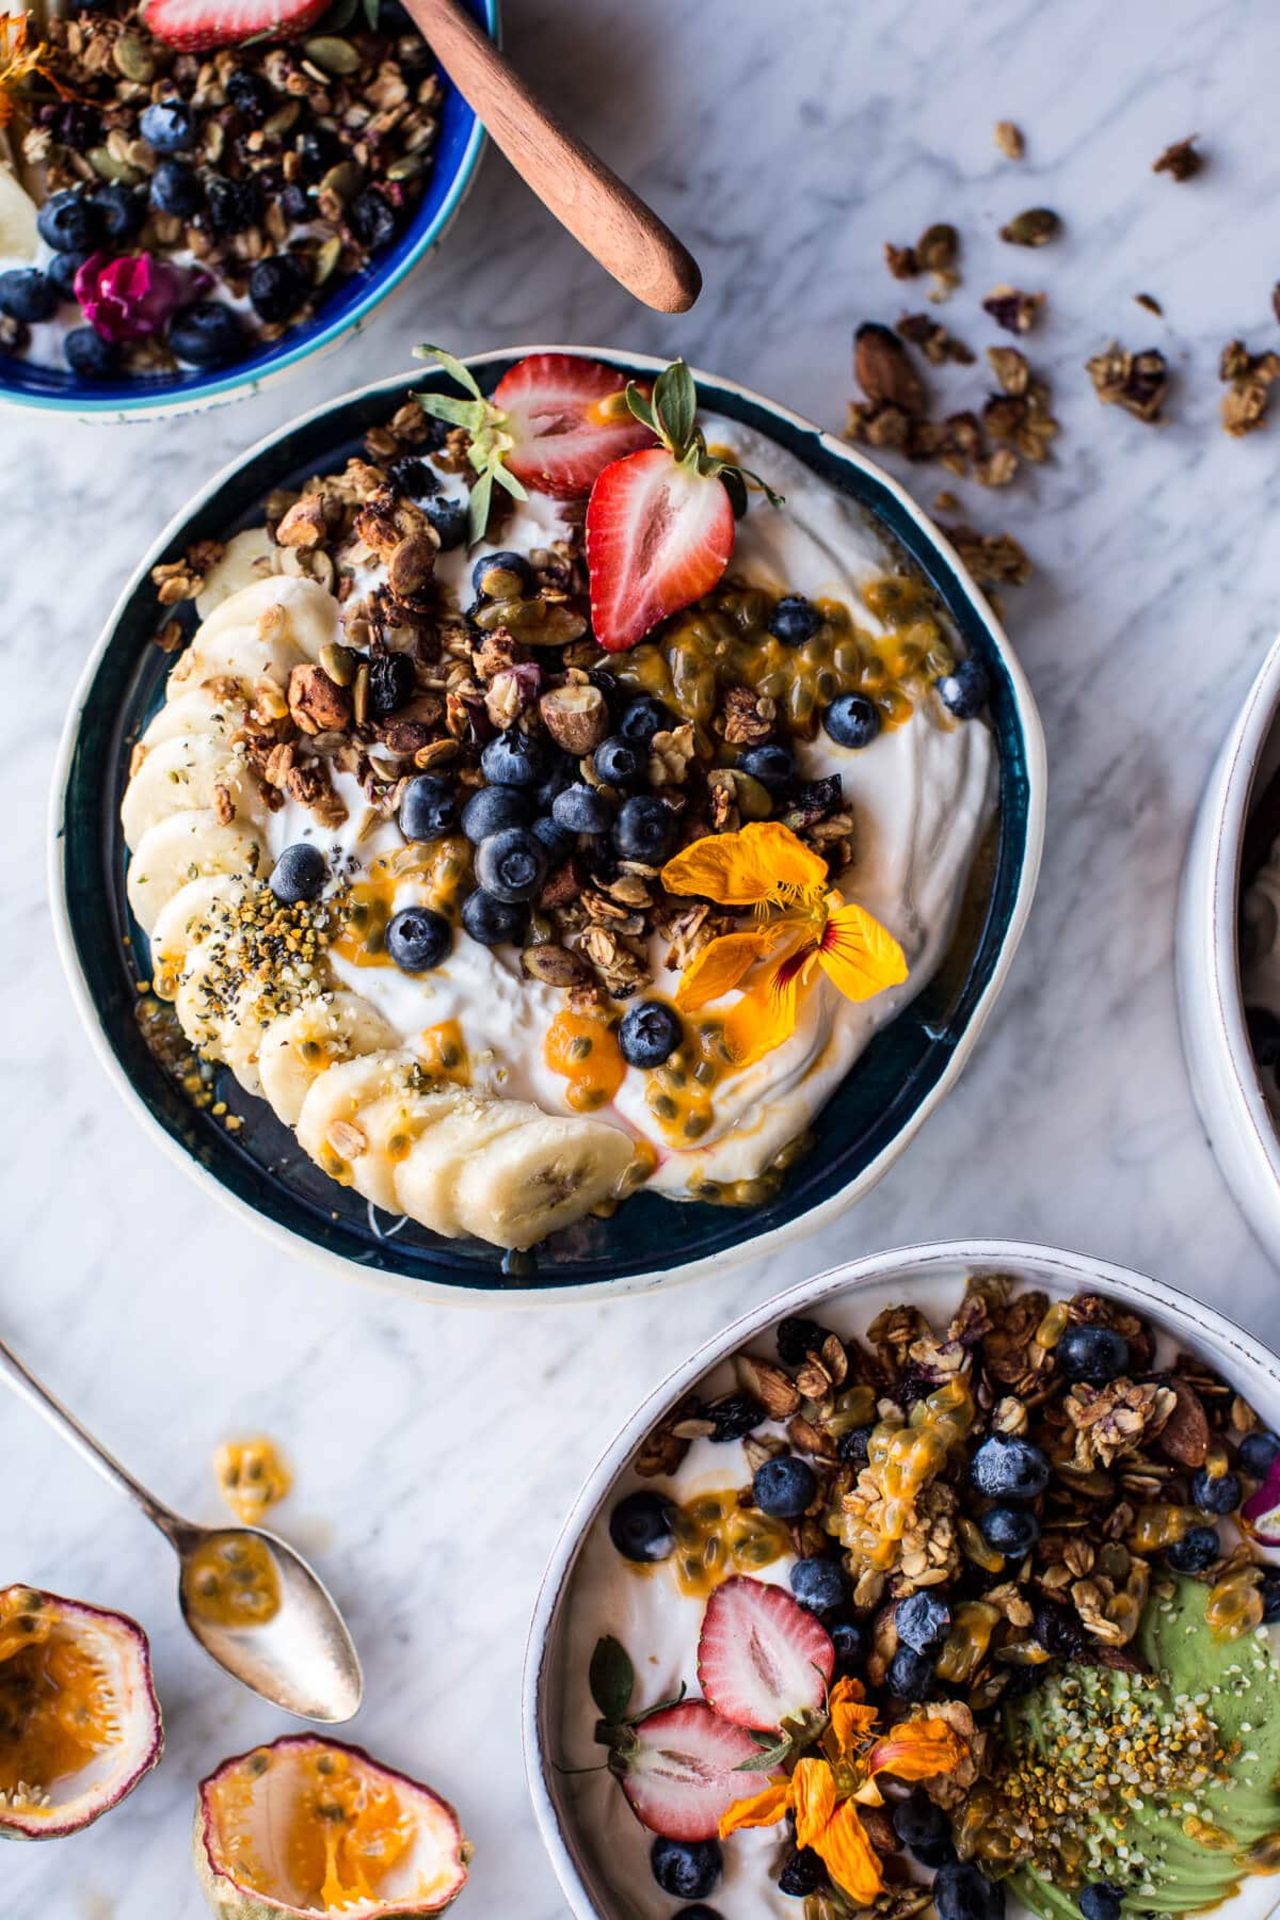 _Girlinskinnyfit_ - Blueberry-Muffin-Granola-Greek-Yogurt-Breakfast-Bowl-1